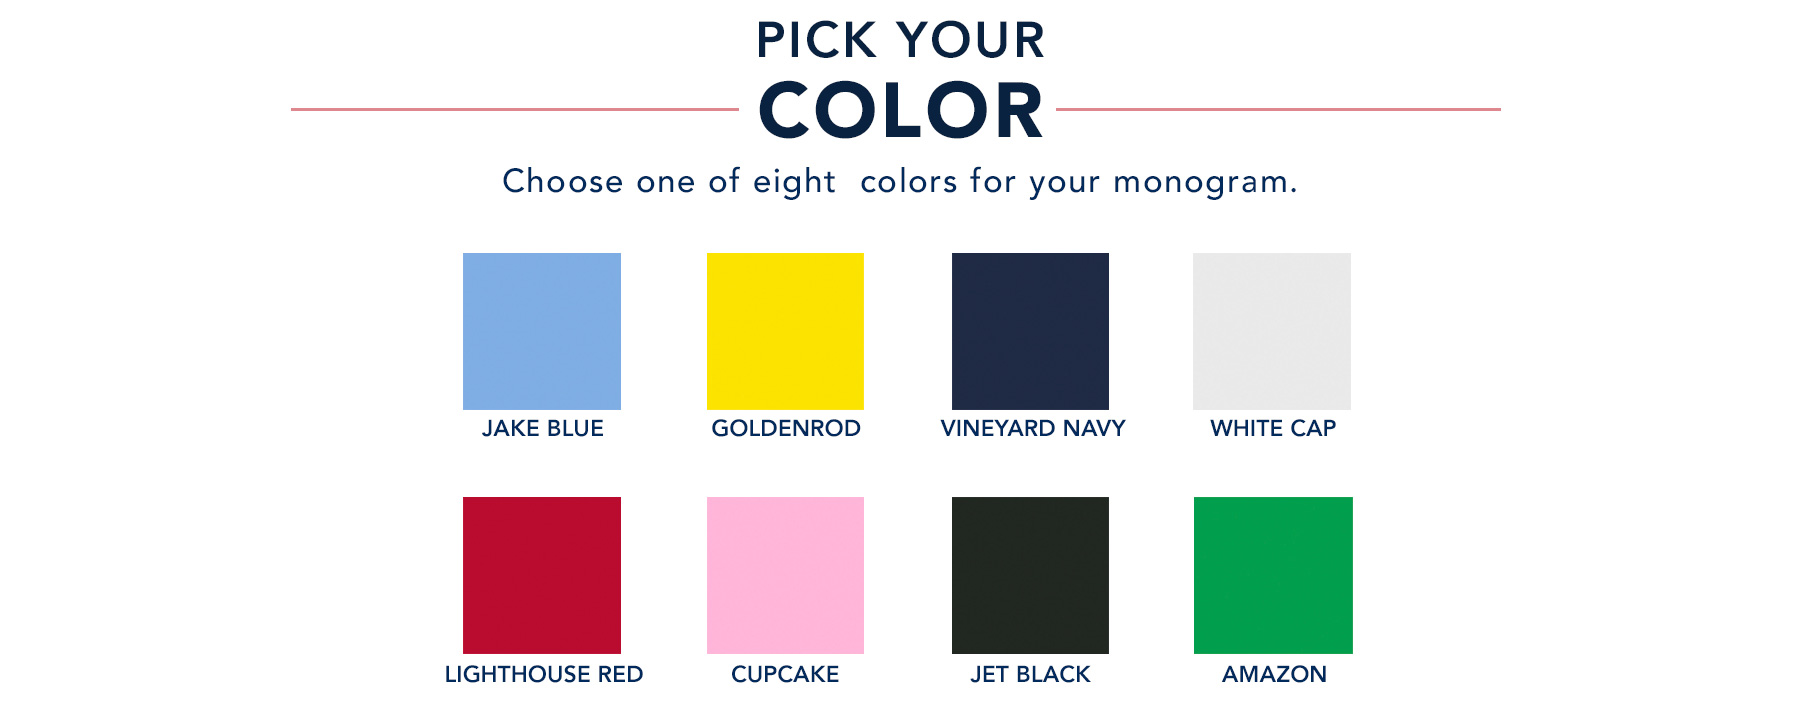 2. Pick your color - choose one of eight colors for your monogram.